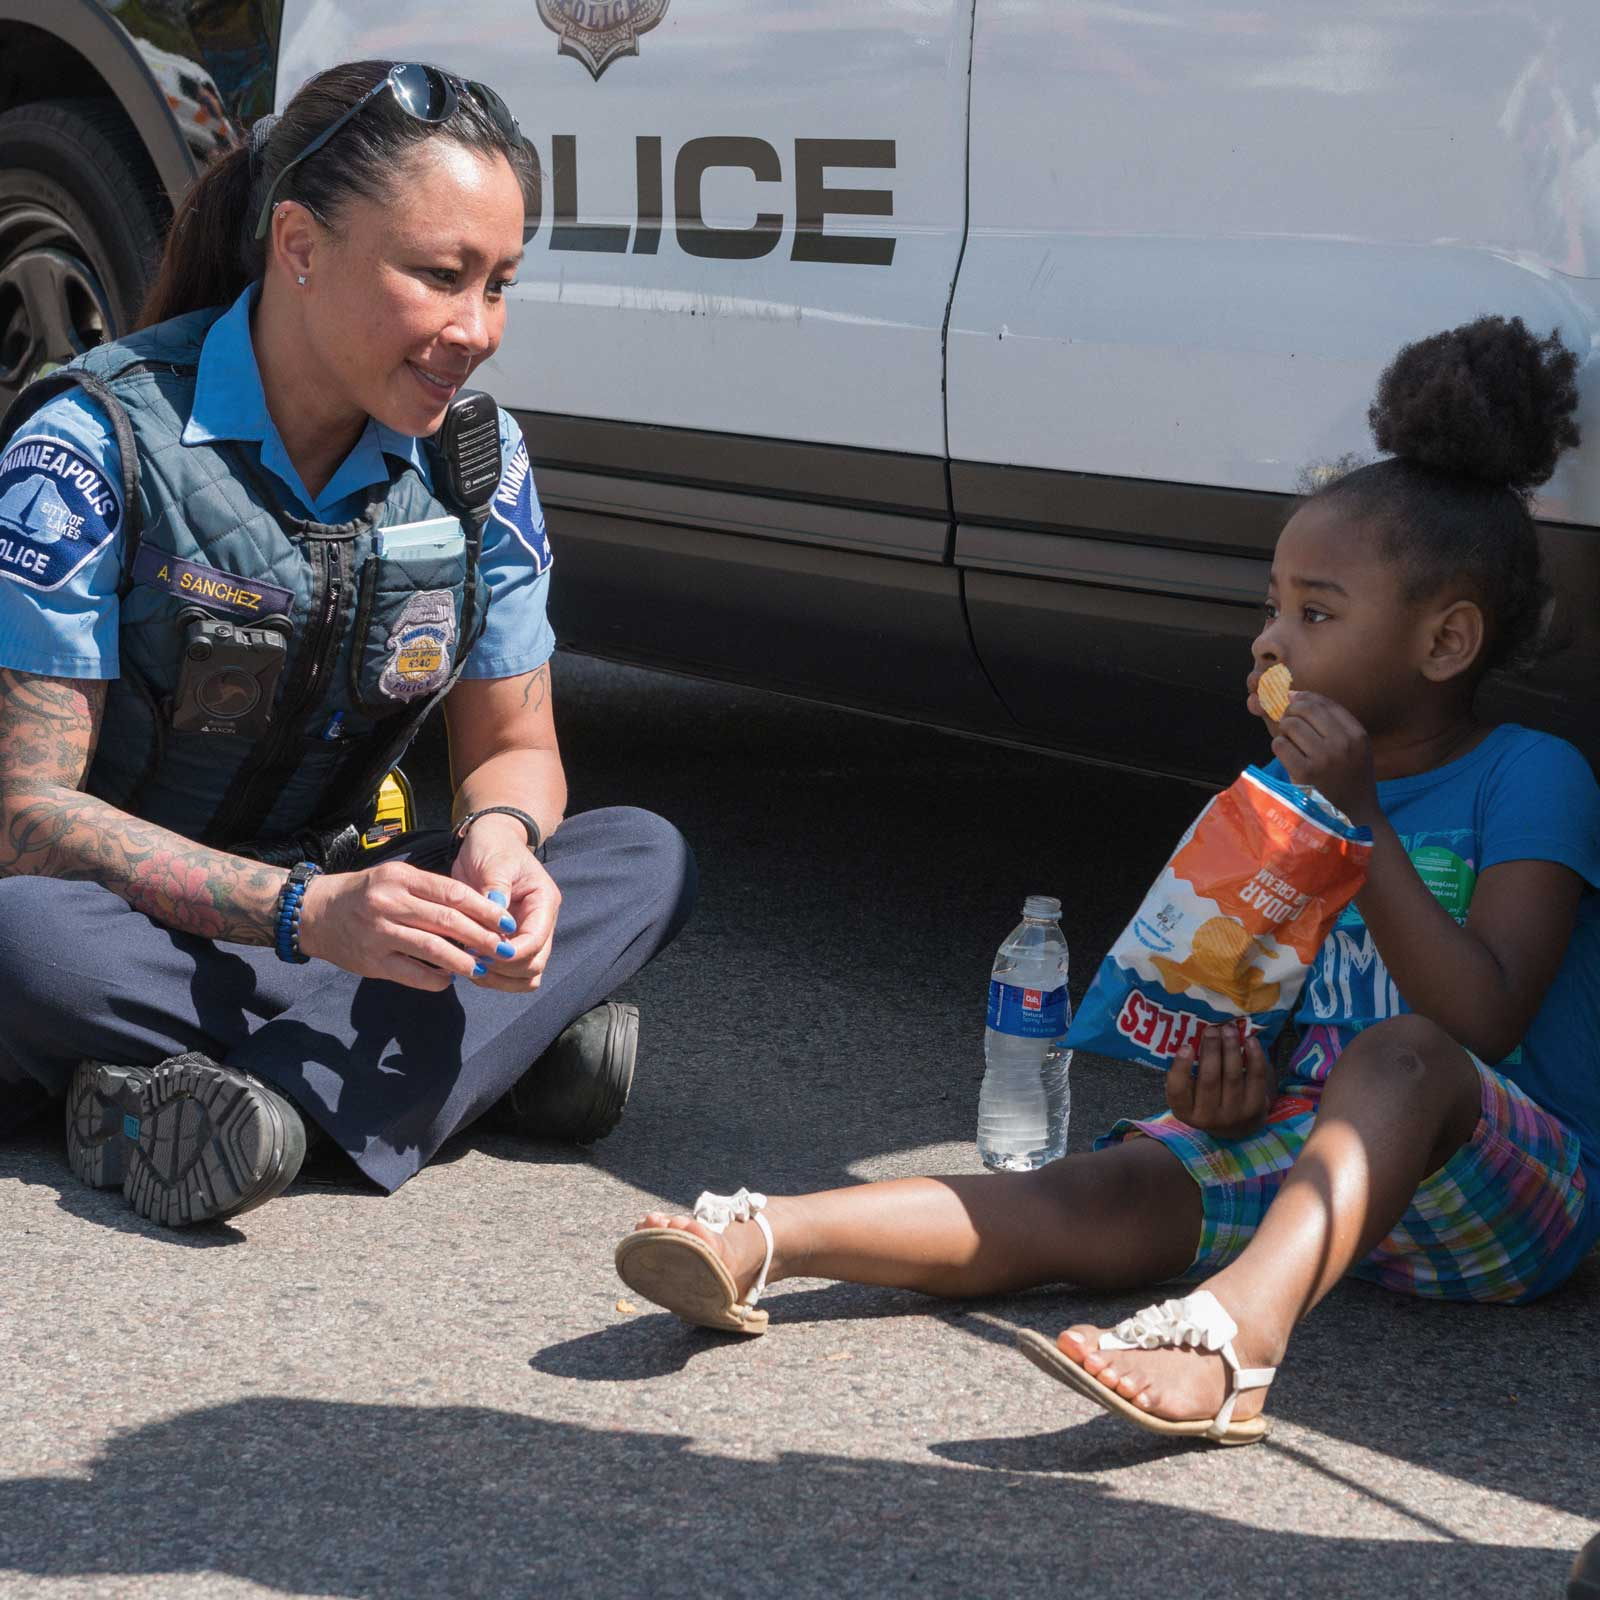 Police officer helping a young girl